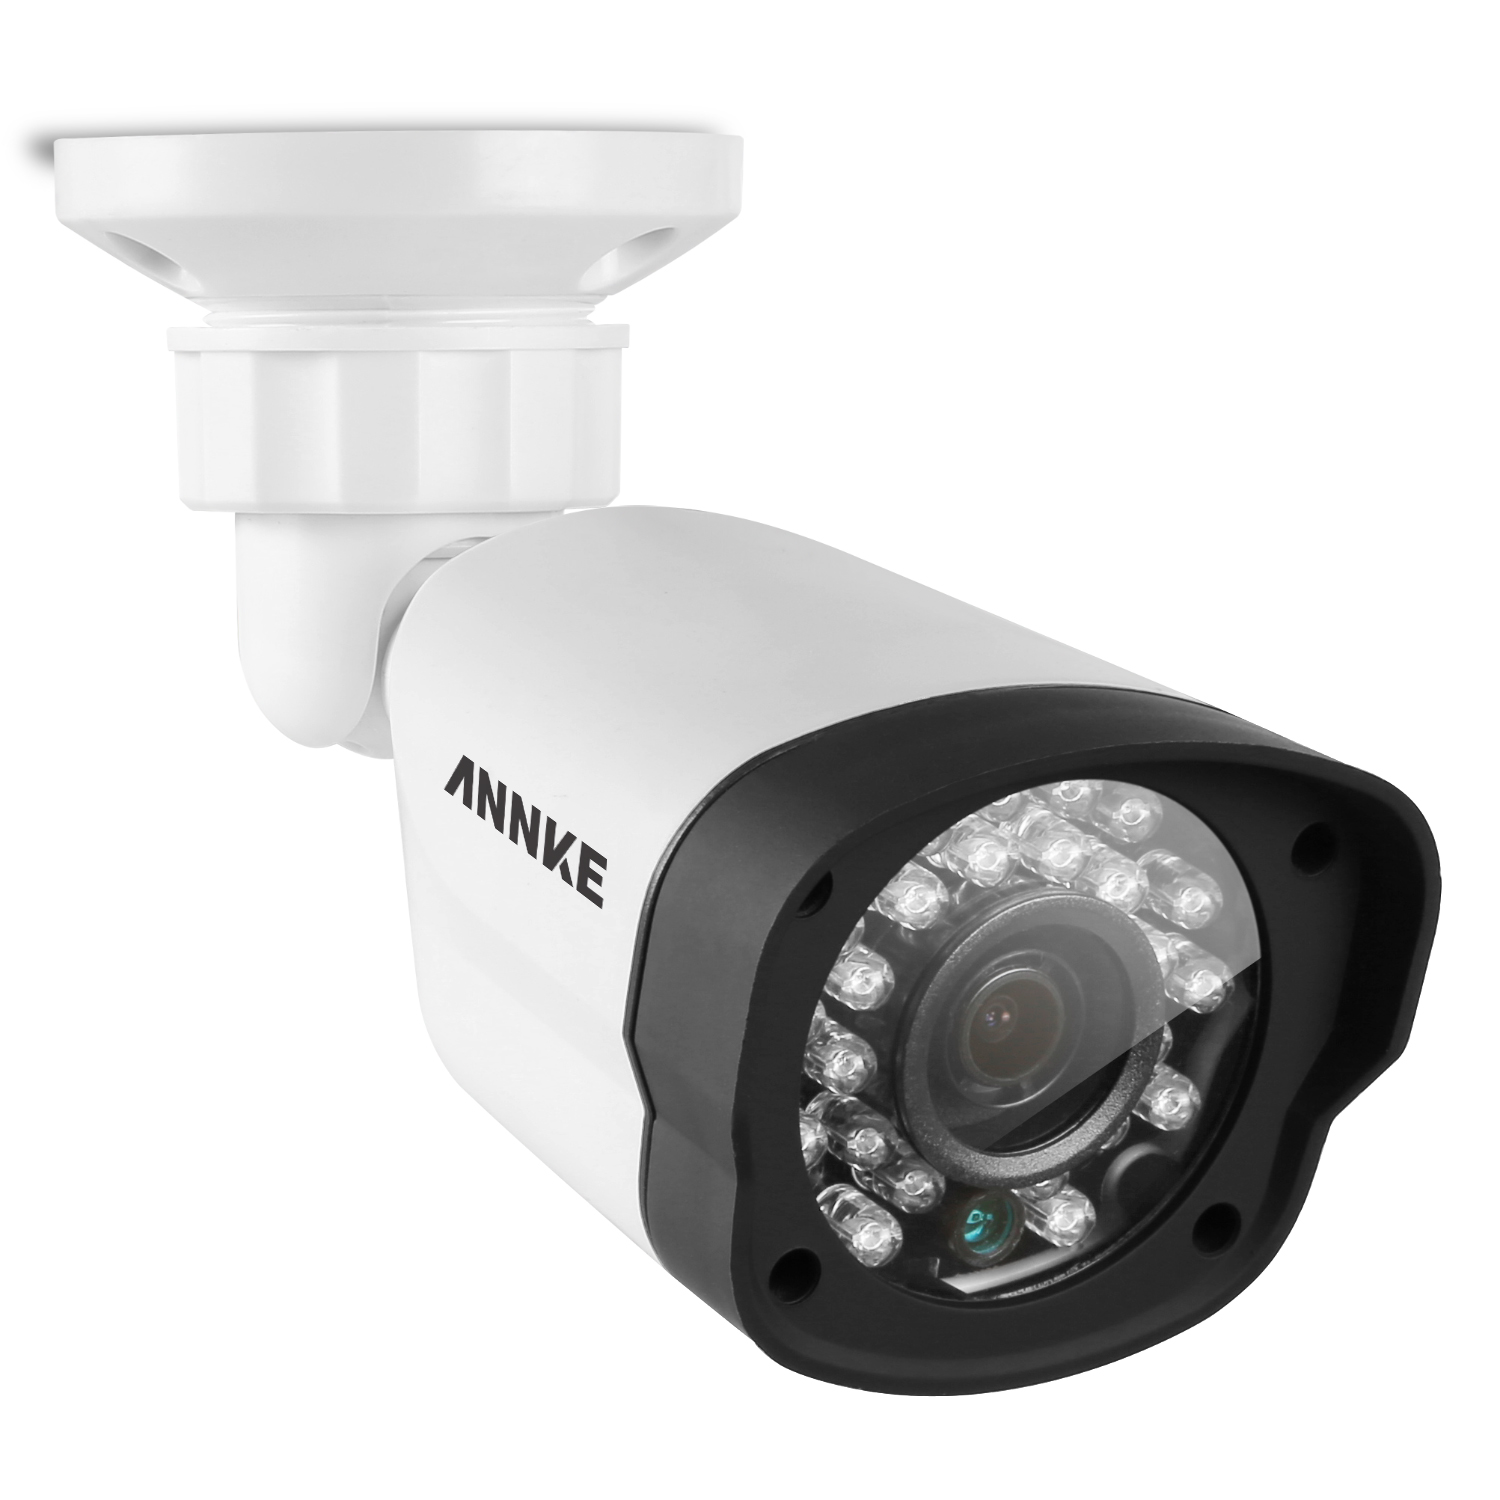 ANNKE CT1AH 1080P HD 4IN1 Security Camera With Weatherproof Housing And 66ft Super Night Vision Up To 66ft/20m Night Vision social housing in glasgow volume 2